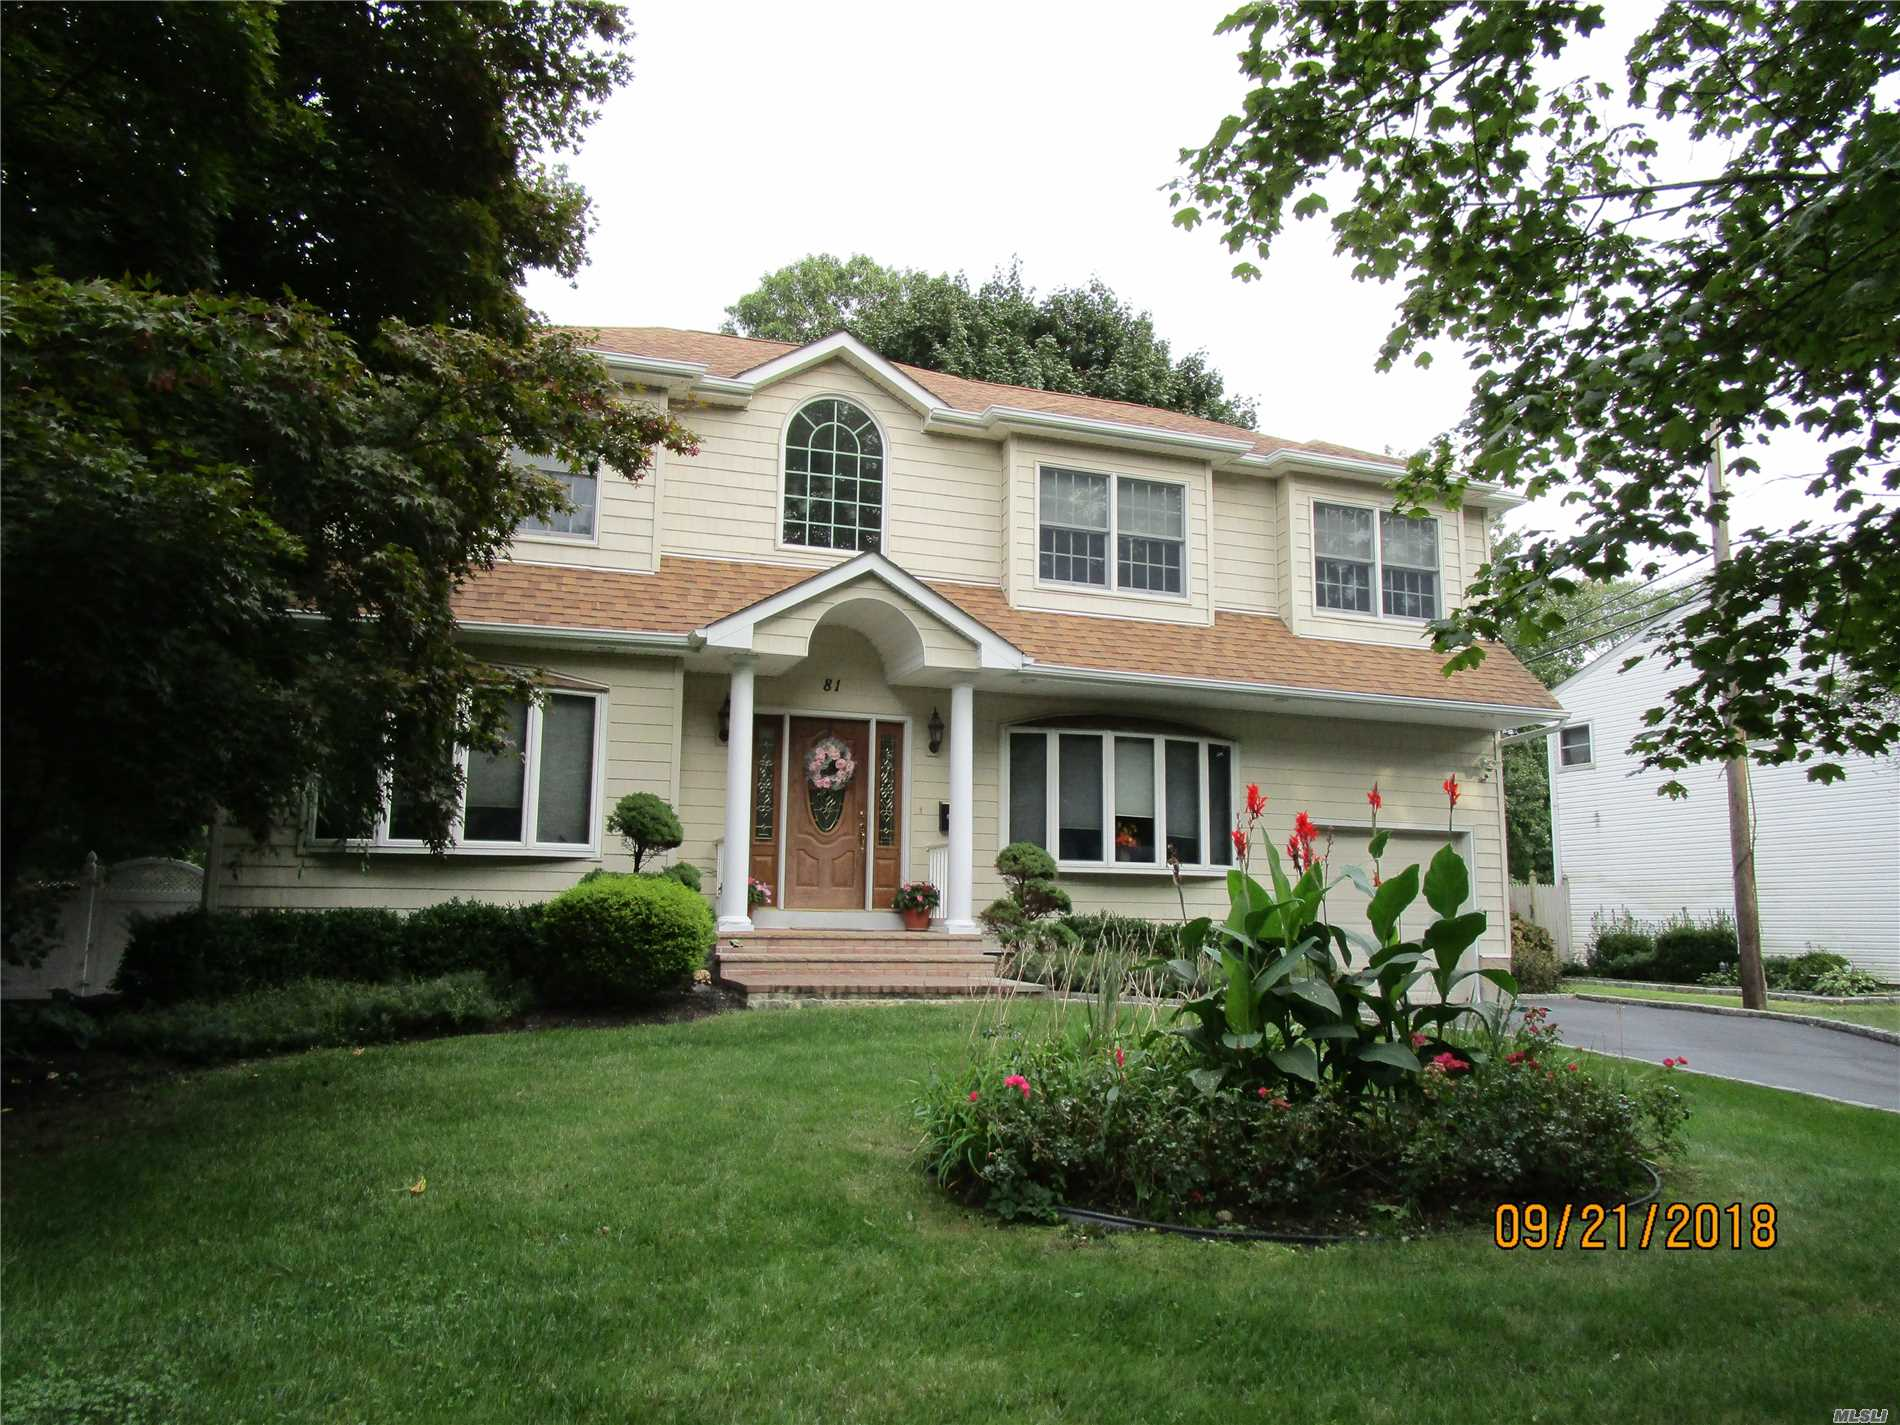 Beautiful Colonial Style Home With 3 Bedrooms And 4 Full Baths. Second Story Was Built In 2005. Open Floor Plan, Updated Windows, Large Foyer, Entertainers Dream Home. Generator.